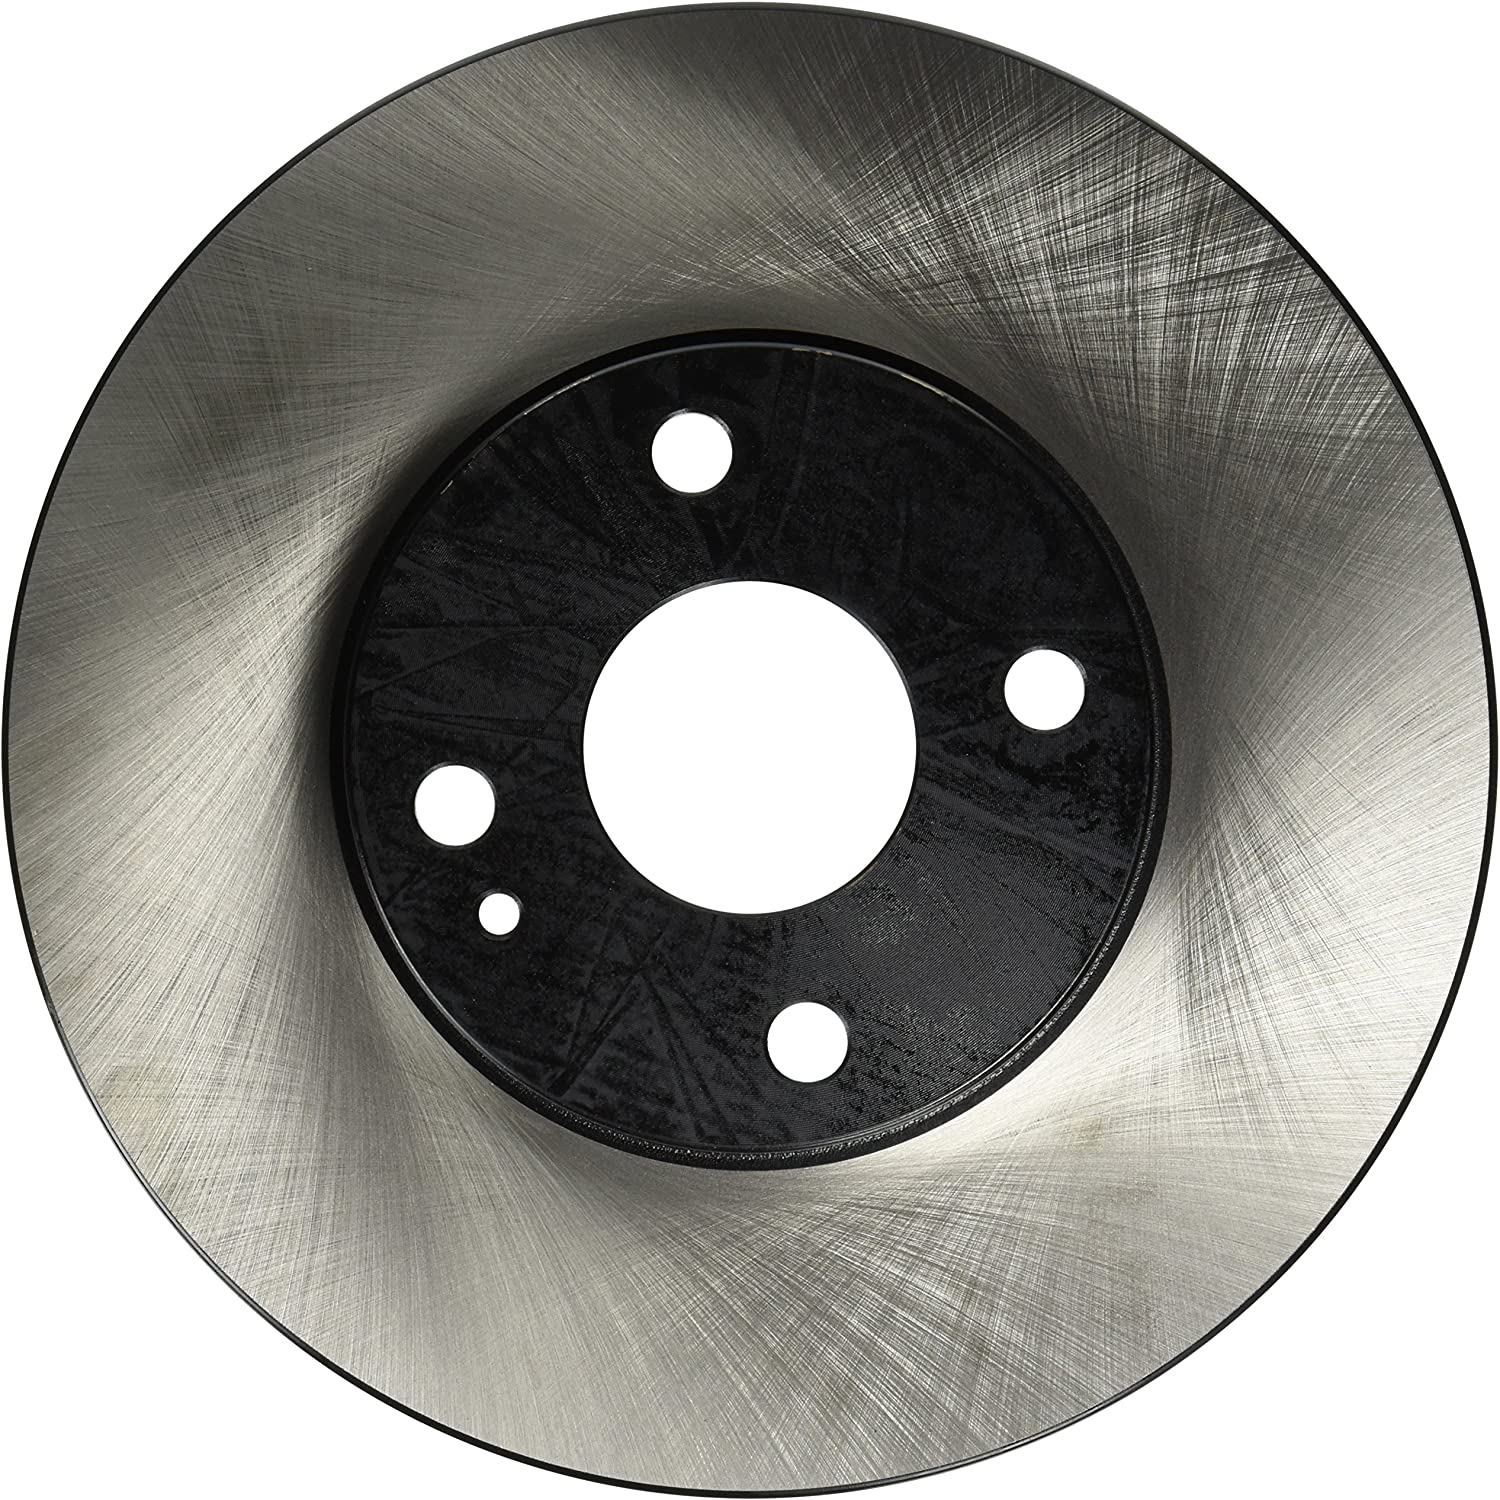 Centric Parts 120.45062 Premium Brake Rotor with E-Coating